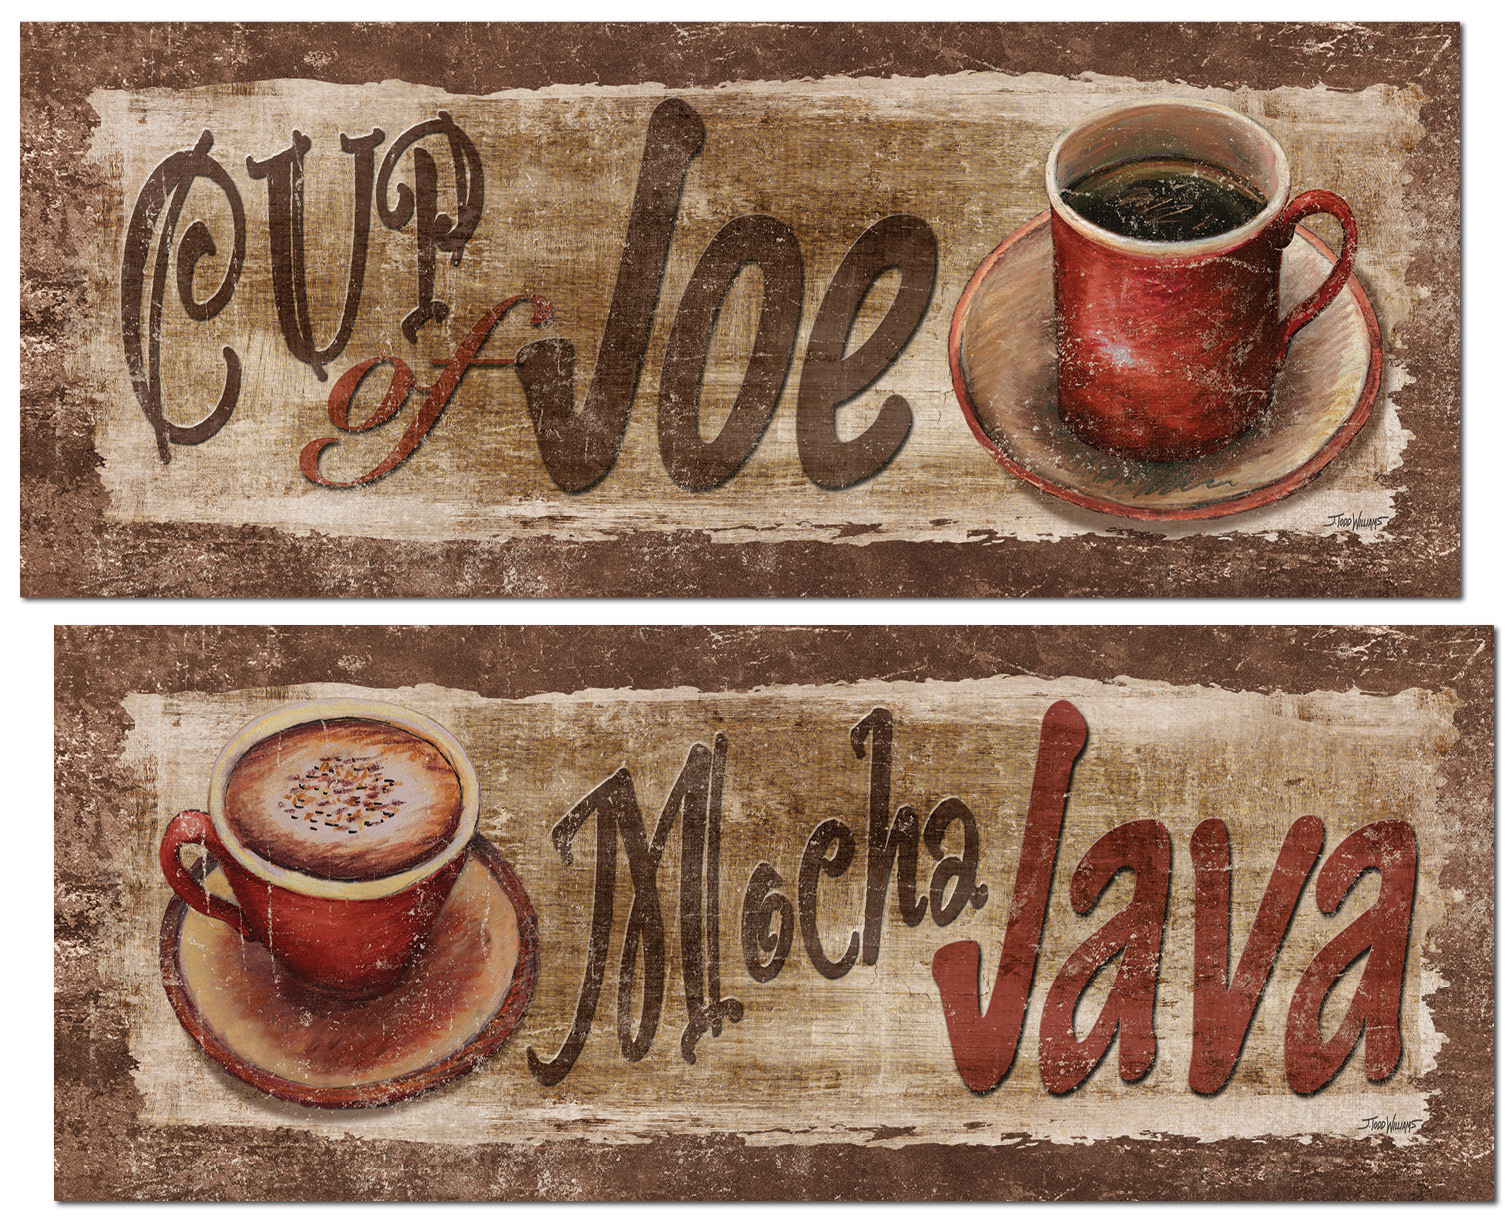 Popular Cup Of Joe and Mocha Java Signs; Kitchen Decor; Two 18x8in Poster  Prints. Teal/Brown